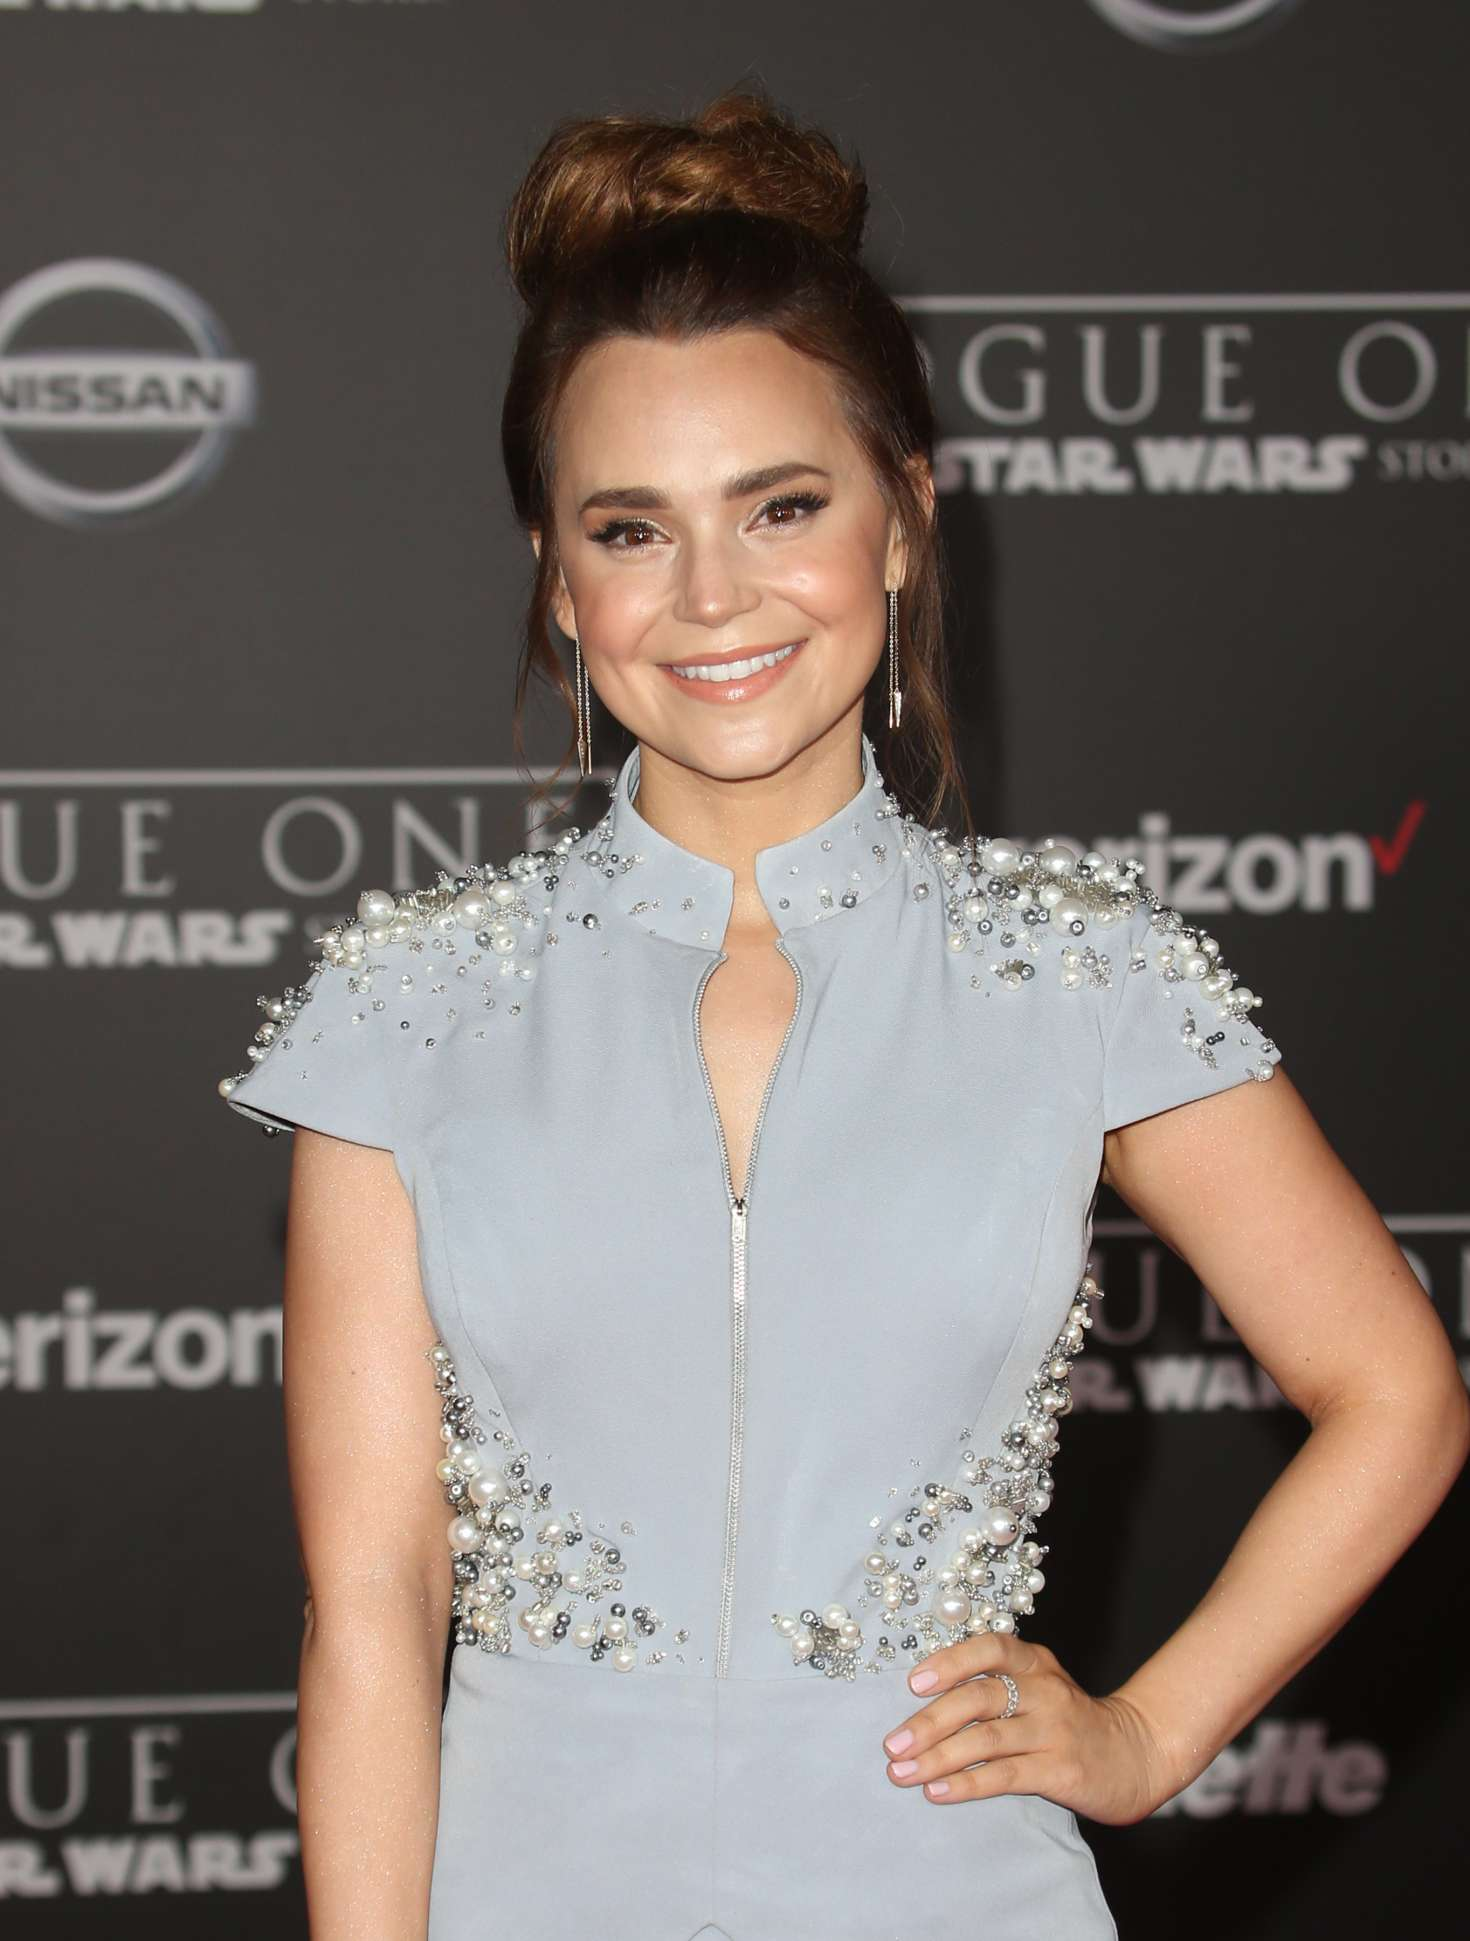 Rosanna Pansino - 'Star Wars Rouge One' Premiere in Hollywood